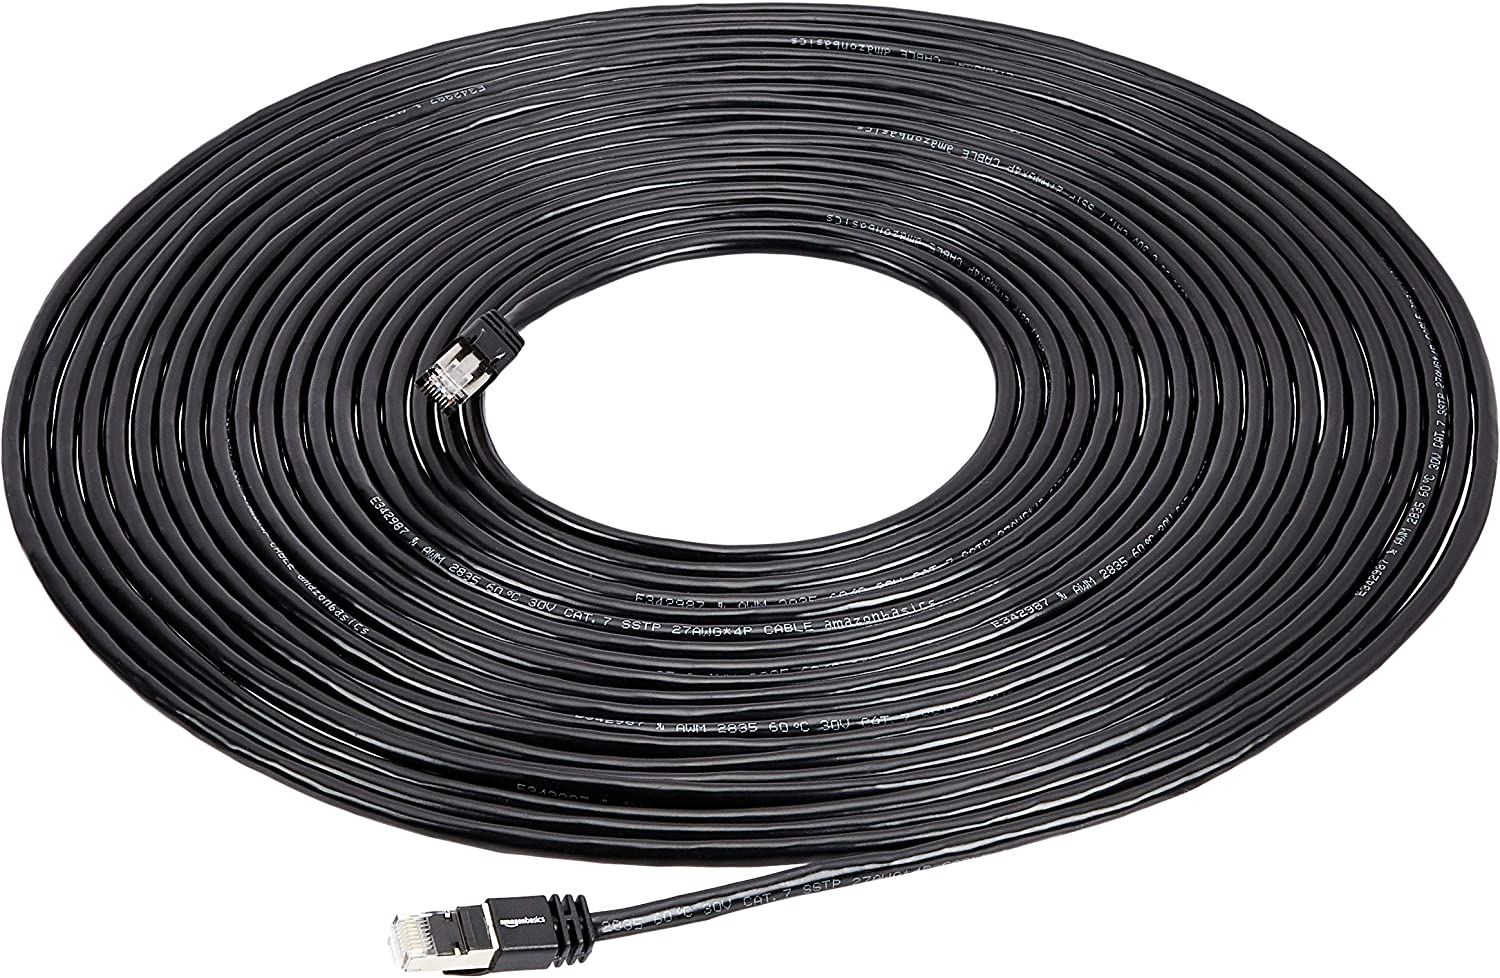 50 Foot White Basics Cat 7 High-Speed Gigabit Ethernet Patch Internet Cable